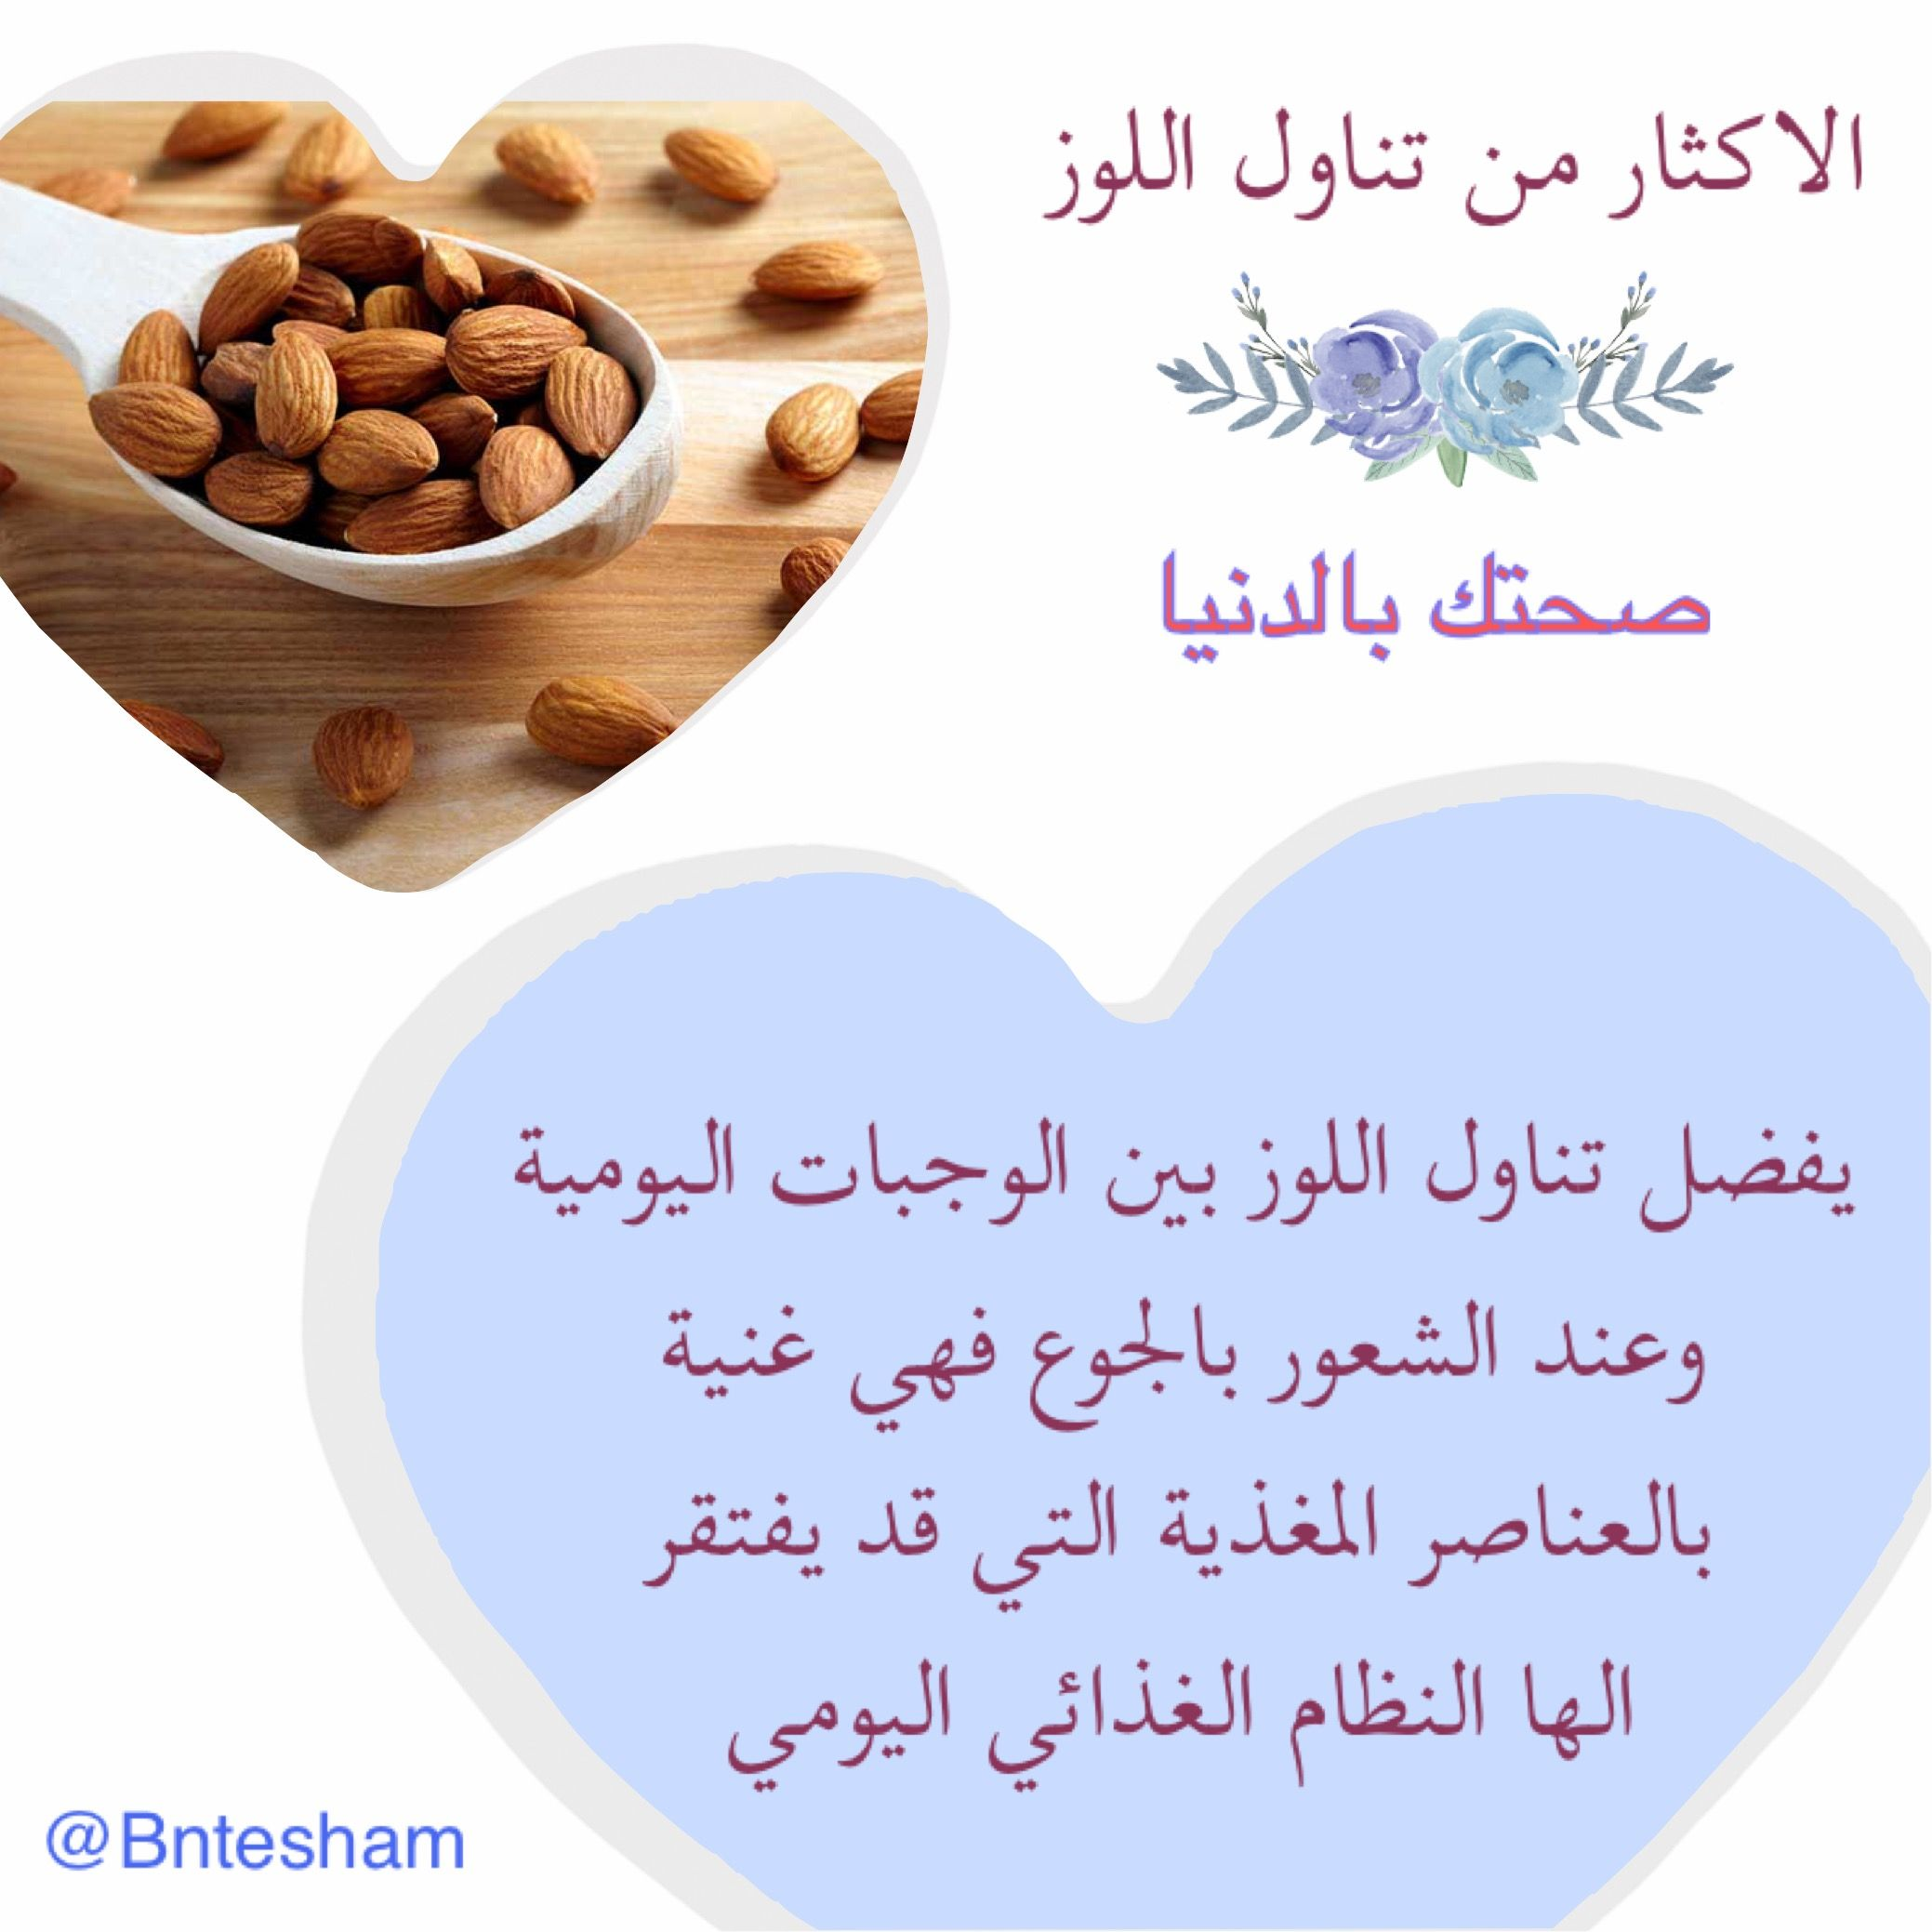 Excessive Intake Of Almonds It Is Preferable To Eat Almonds Between Daily Meals When You Feel Hungry It Is Rich With Nutrie Daily Diet Daily Meals Food Hacks